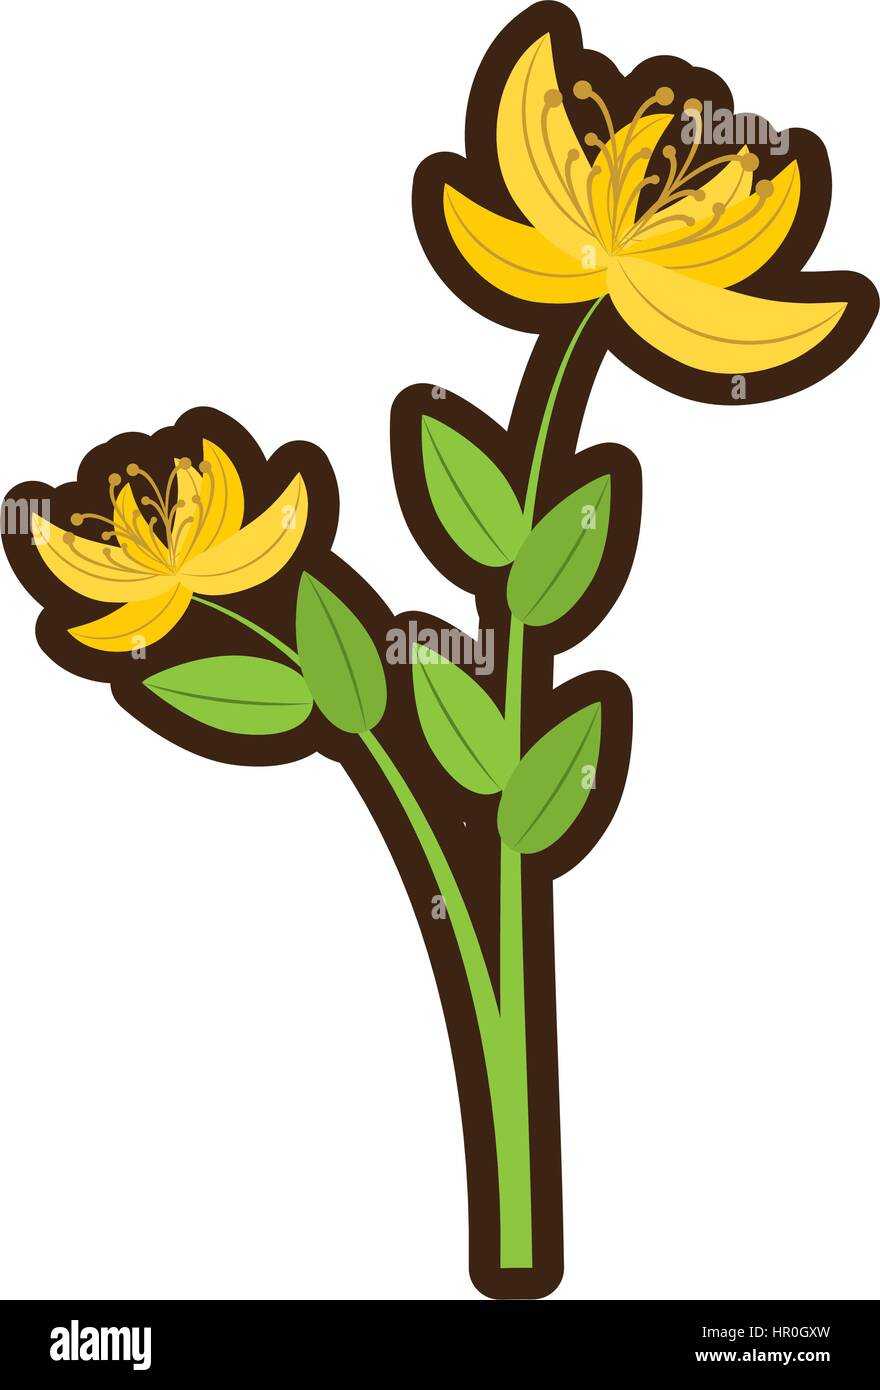 Cartoon yellow lily flower natural stock vector art illustration cartoon yellow lily flower natural izmirmasajfo